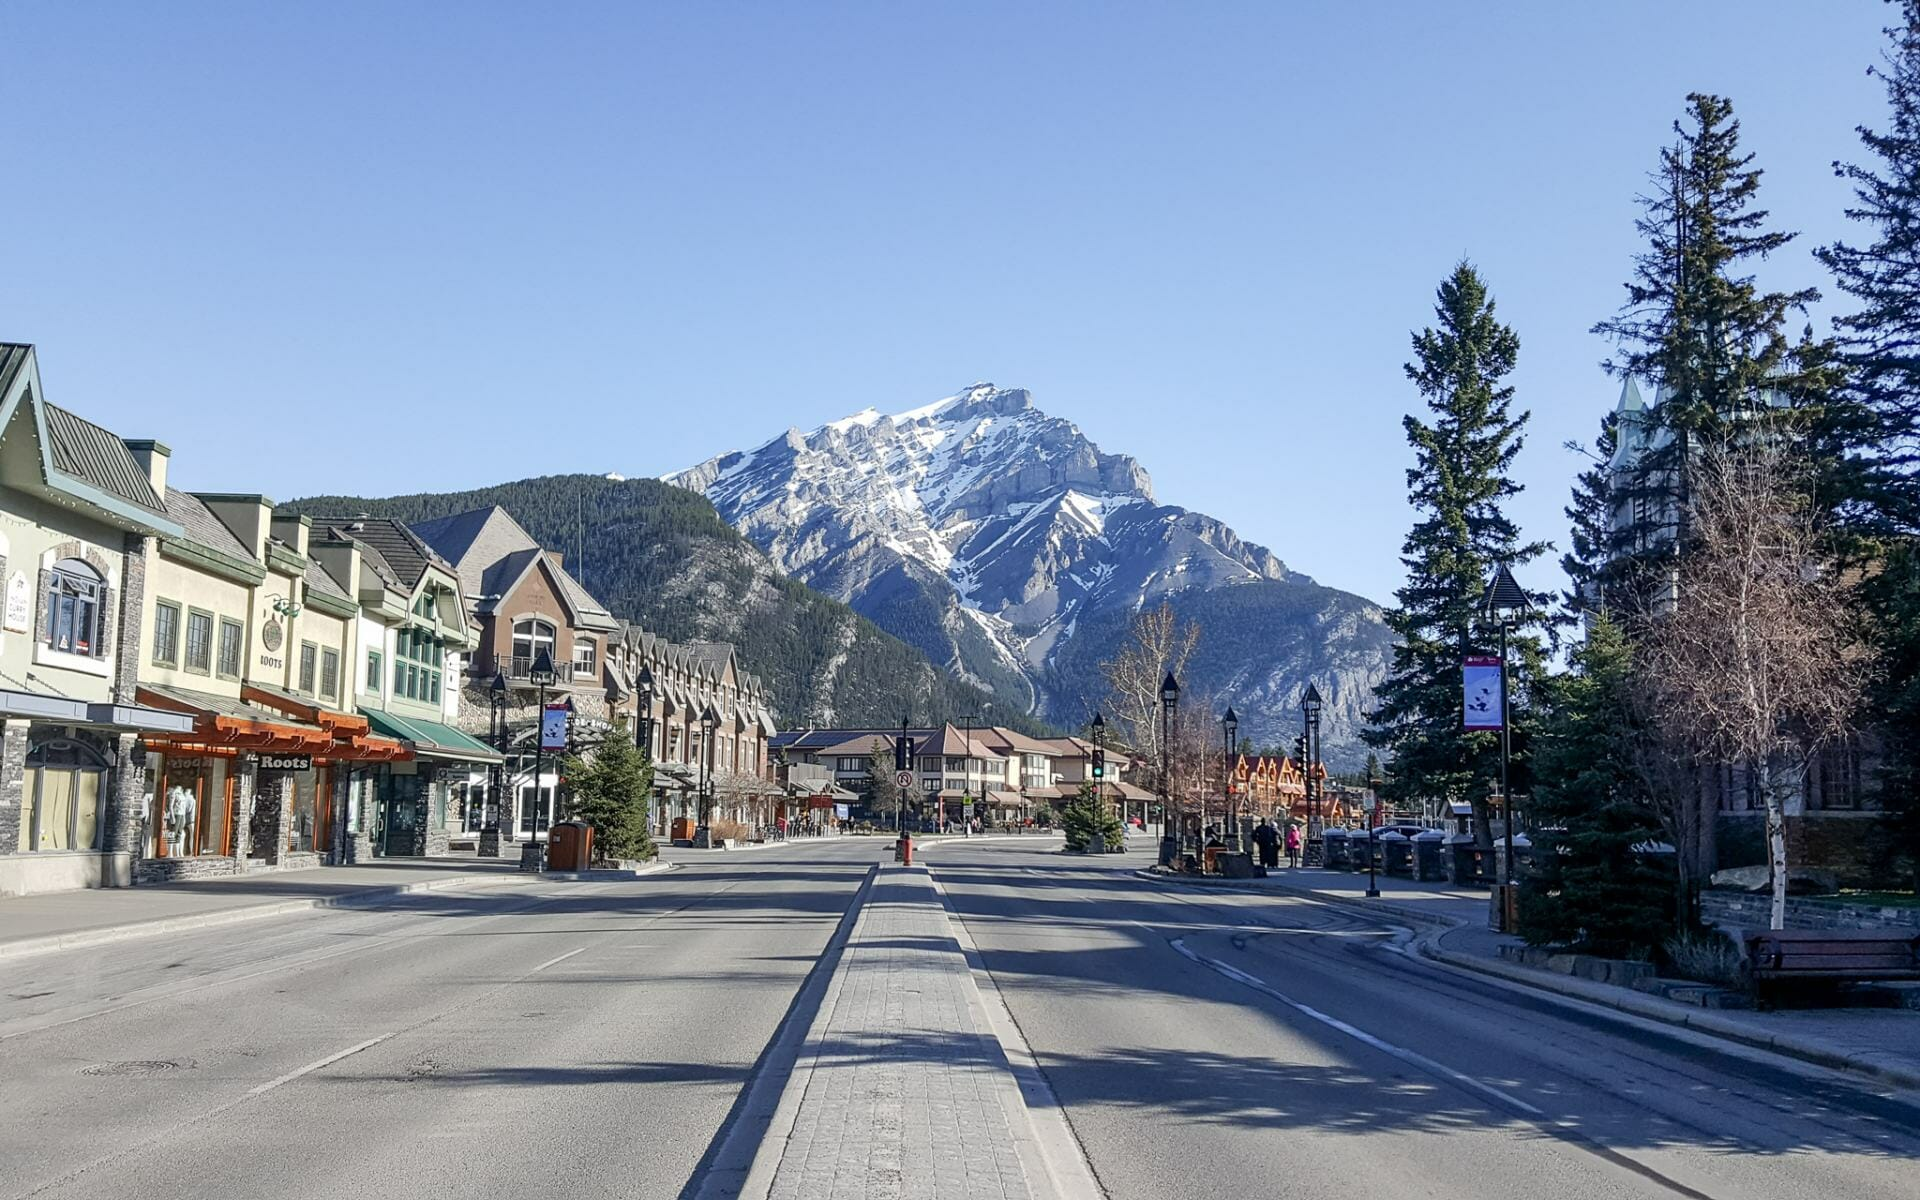 Banff Avenue is a must see if you have 4 days in Banff